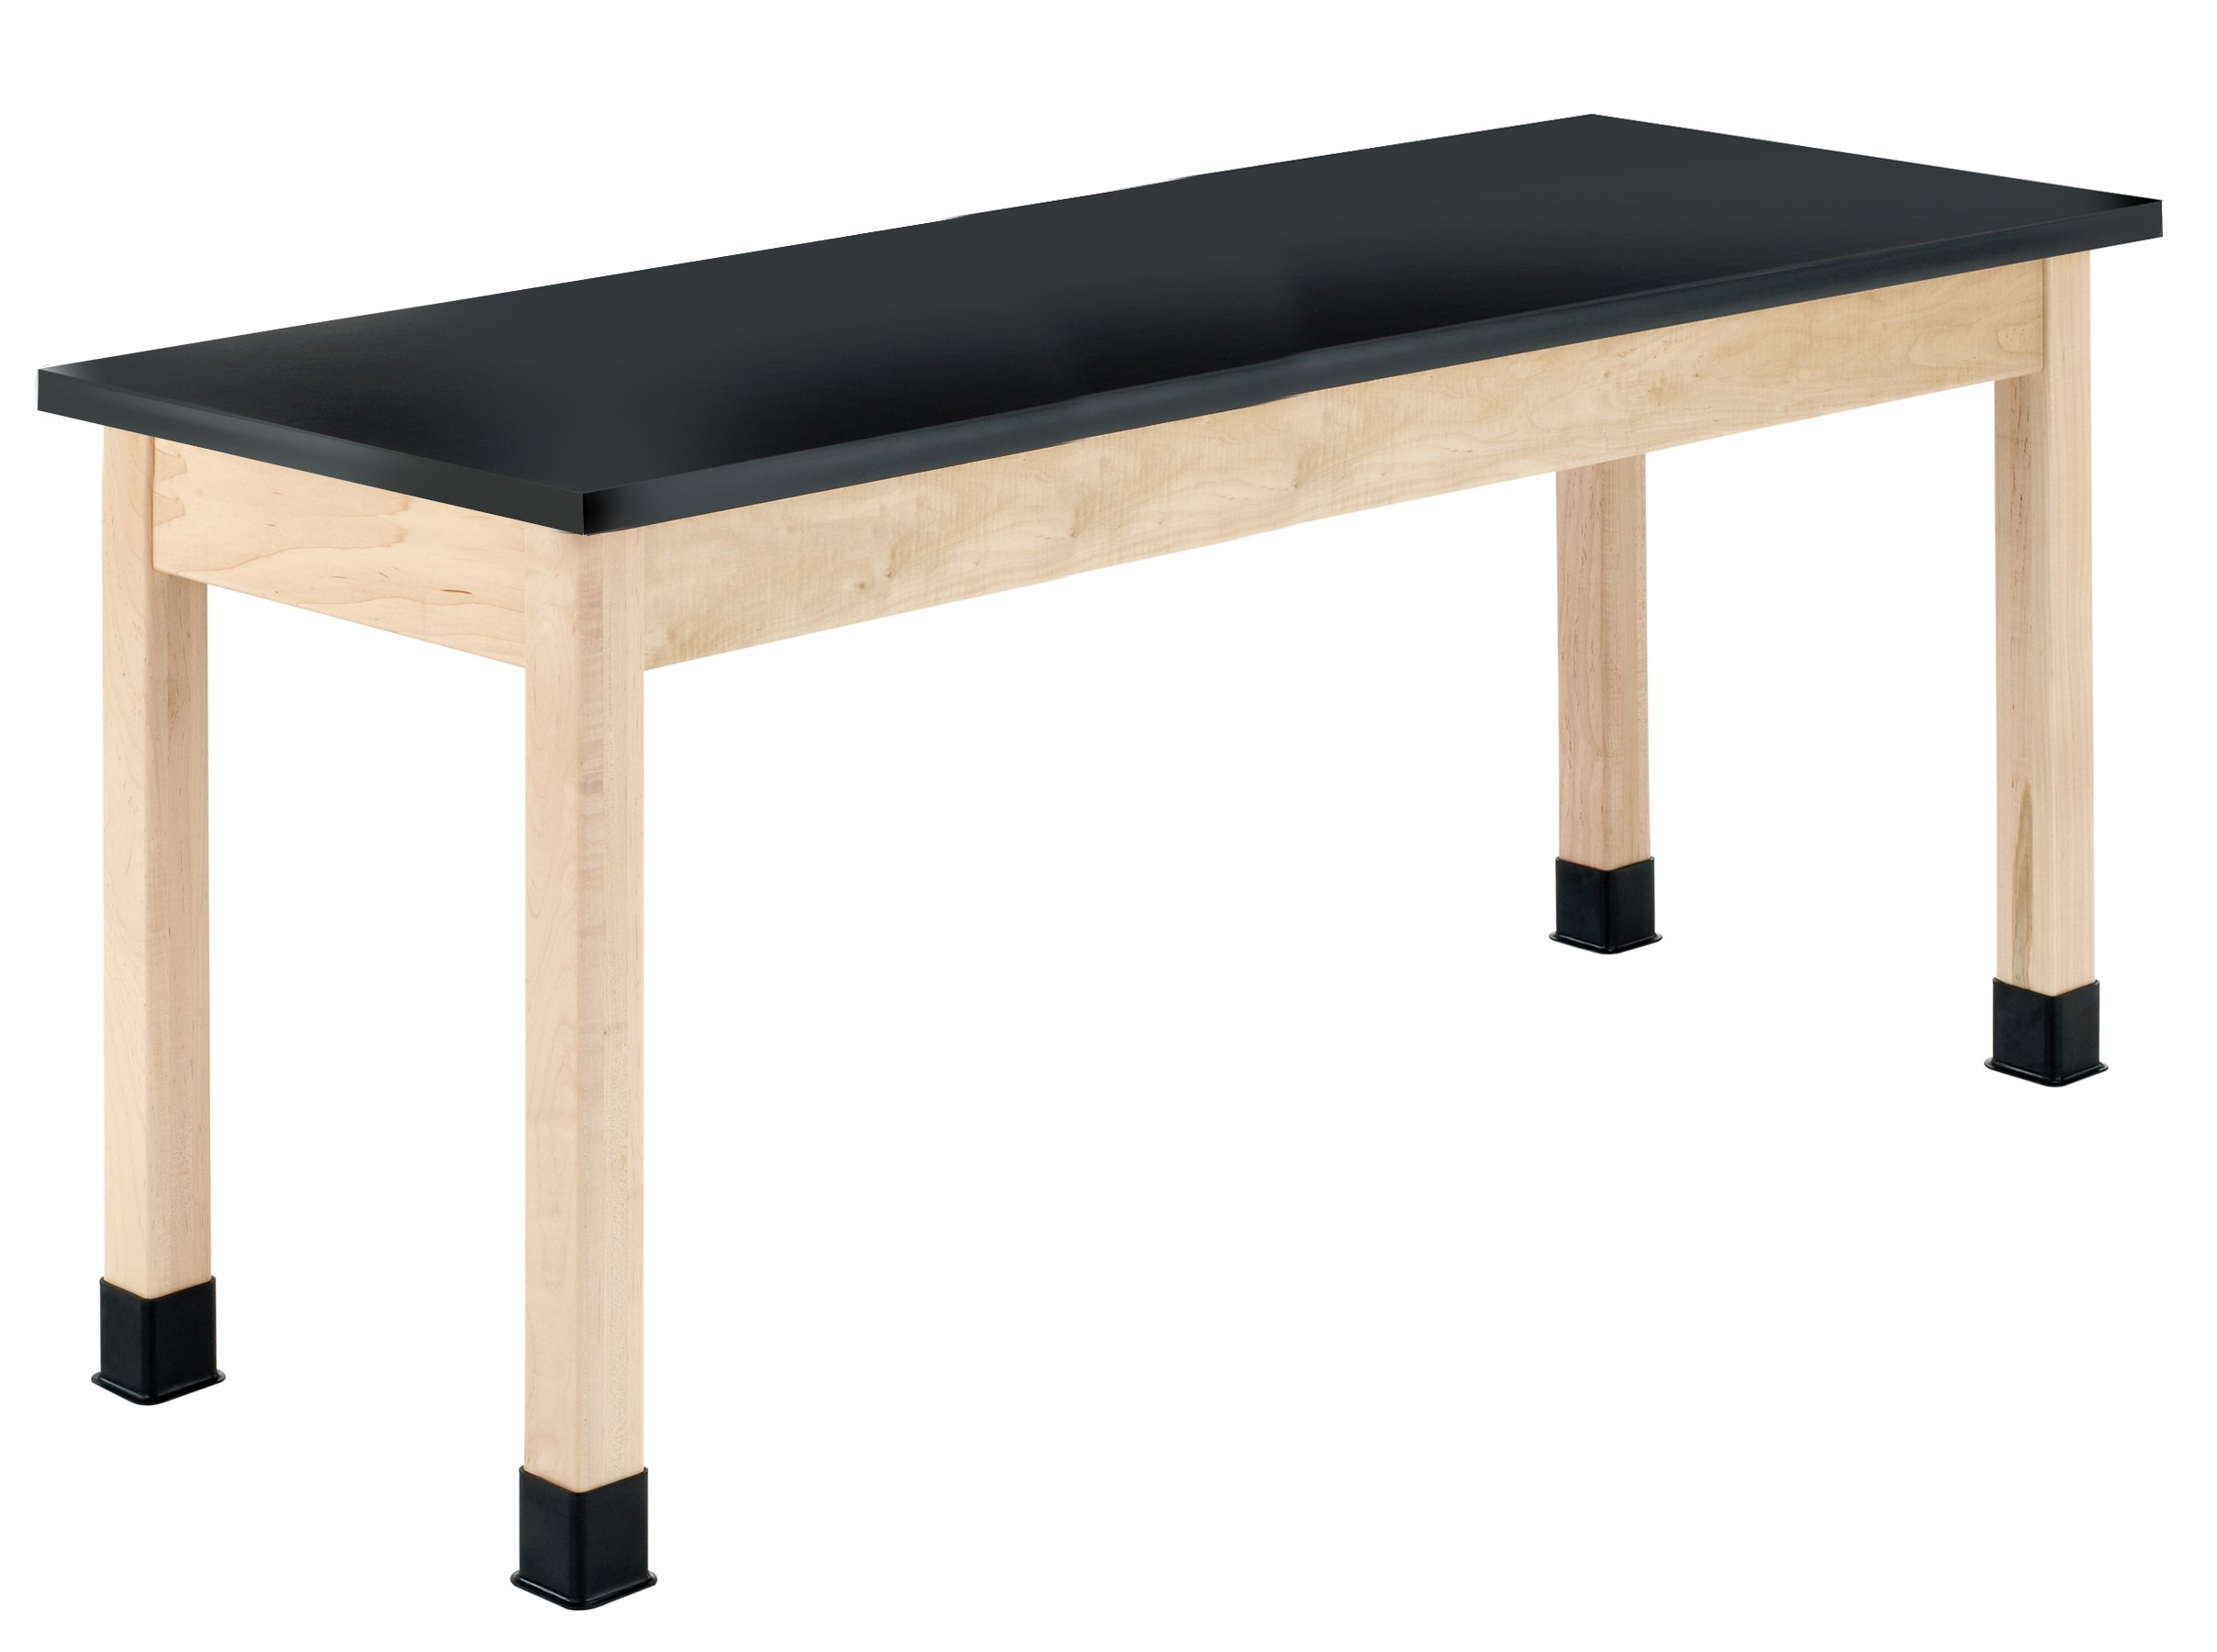 Diversified Woodcrafts P7606M30N - 24''x60'' - 30'' High, Plain Apron Laboratory Table, Maple Legs & Apron, Epoxy Resin Top, Made in USA